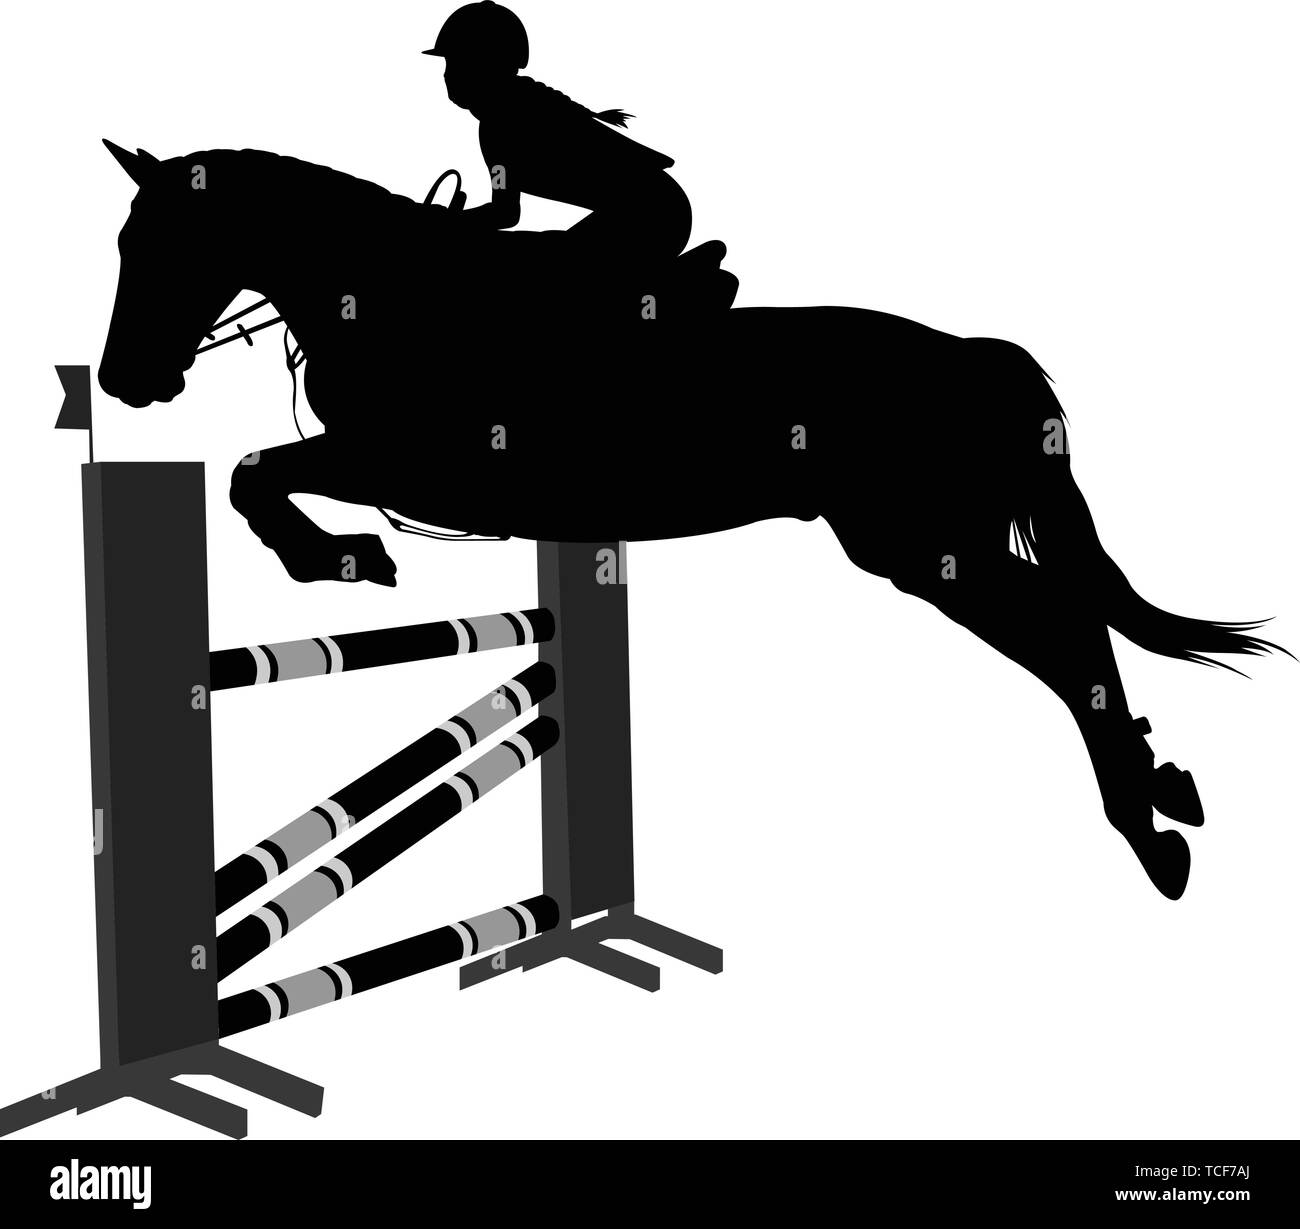 jumping show.equestrian sport  horse with jockey jumping a hurdle silhouette - vector - Stock Vector